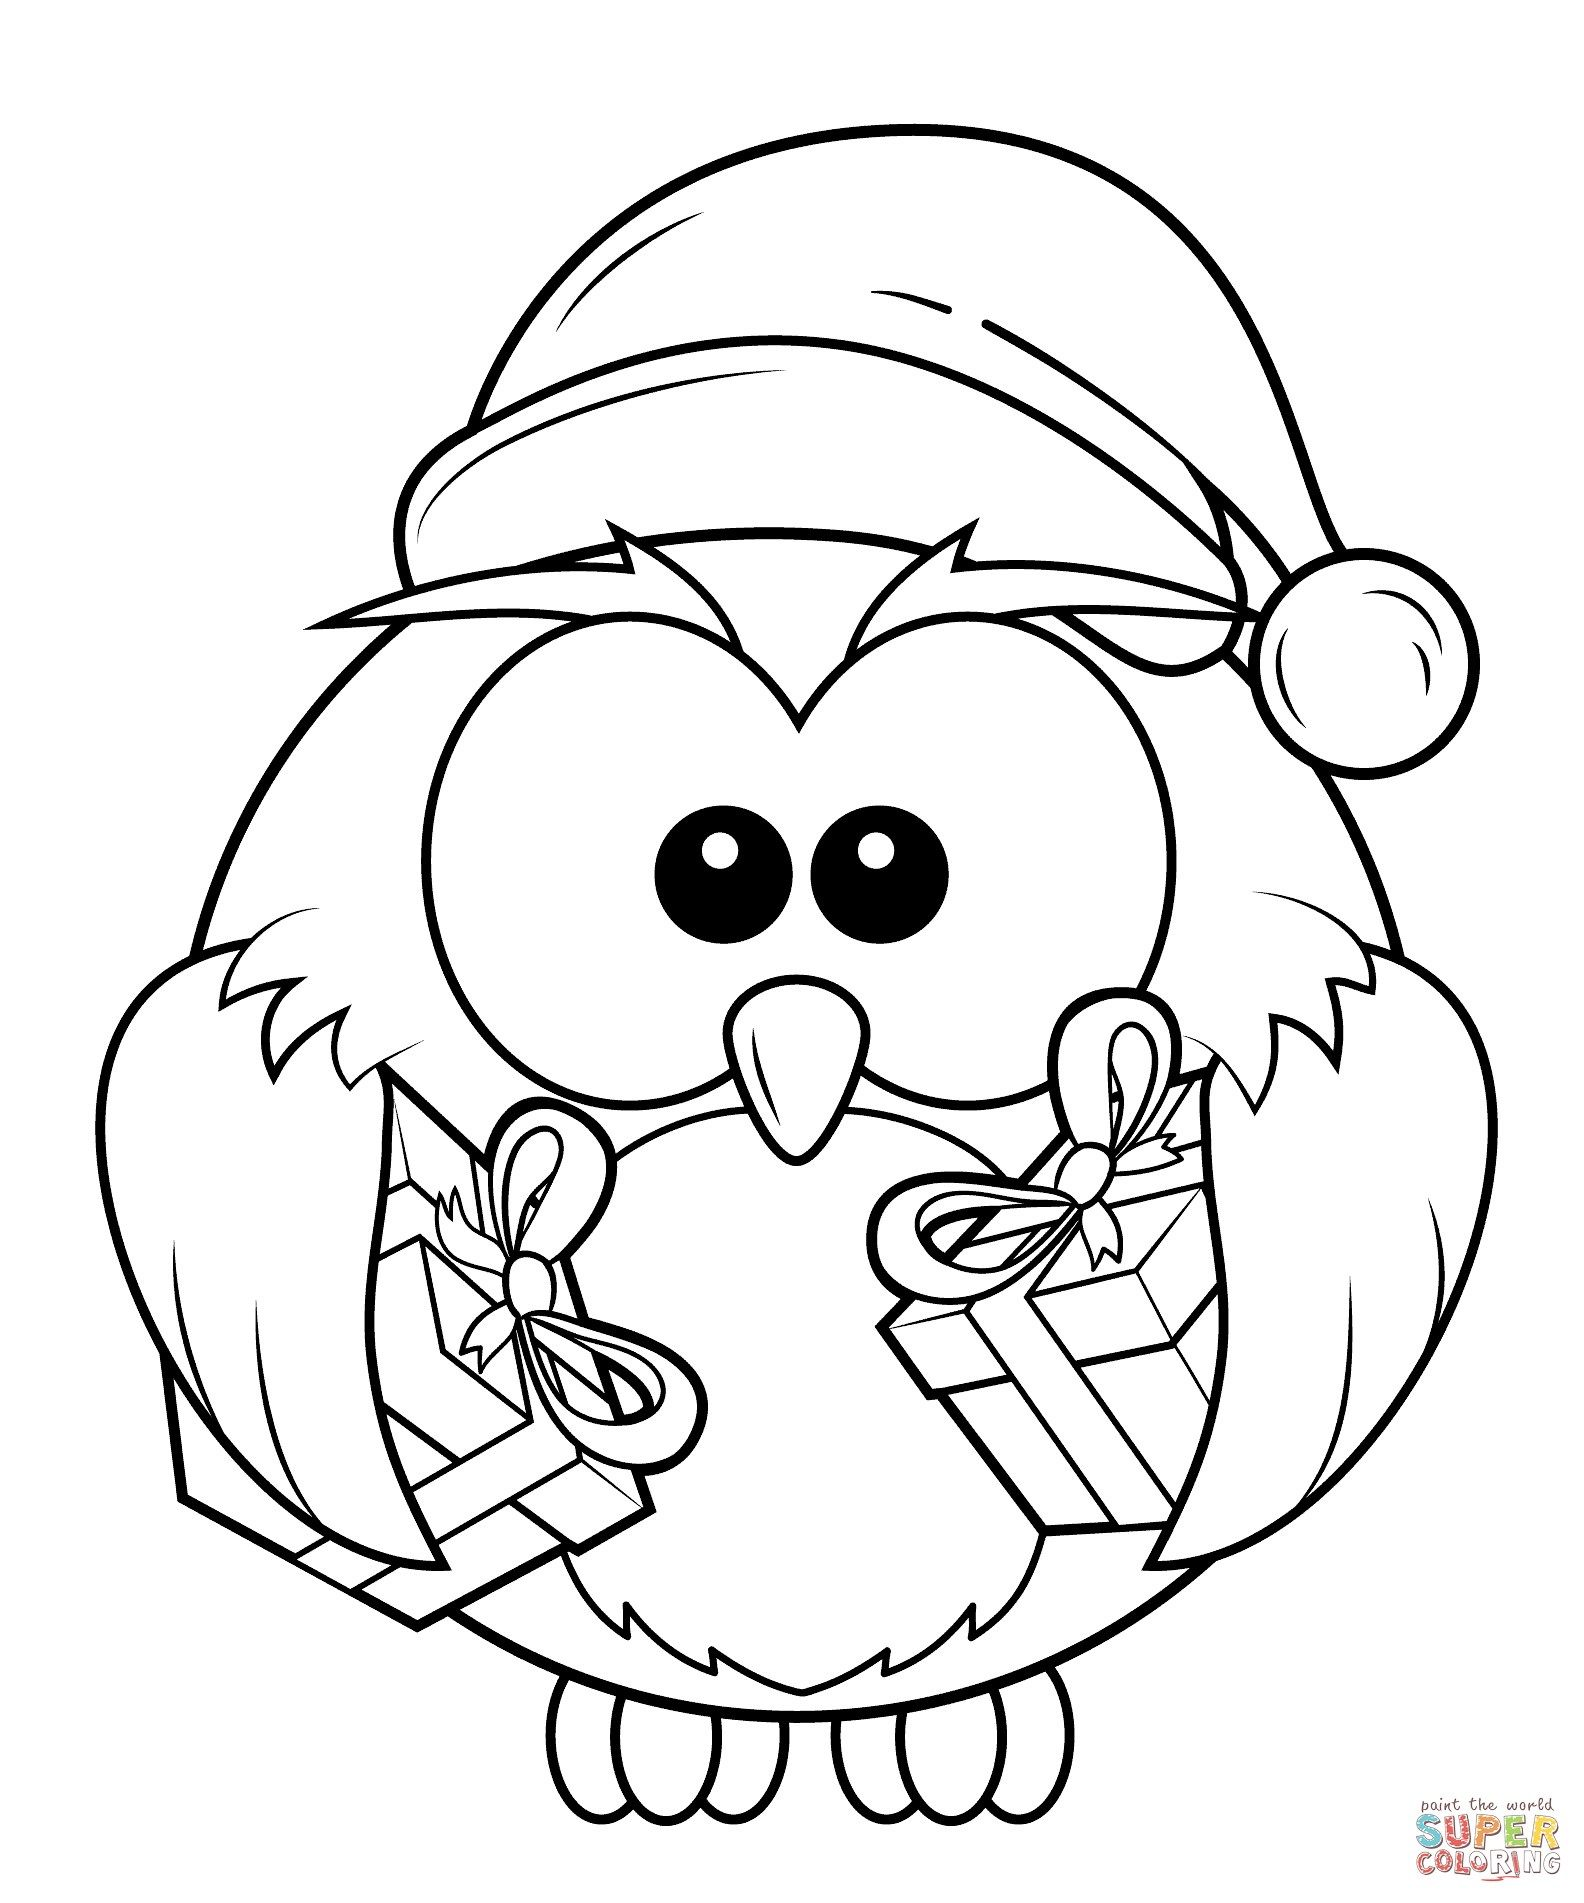 Wonderful Image Of Owls Coloring Pages Davemelillo Com Owl Coloring Pages Christmas Coloring Pages Coloring Pages